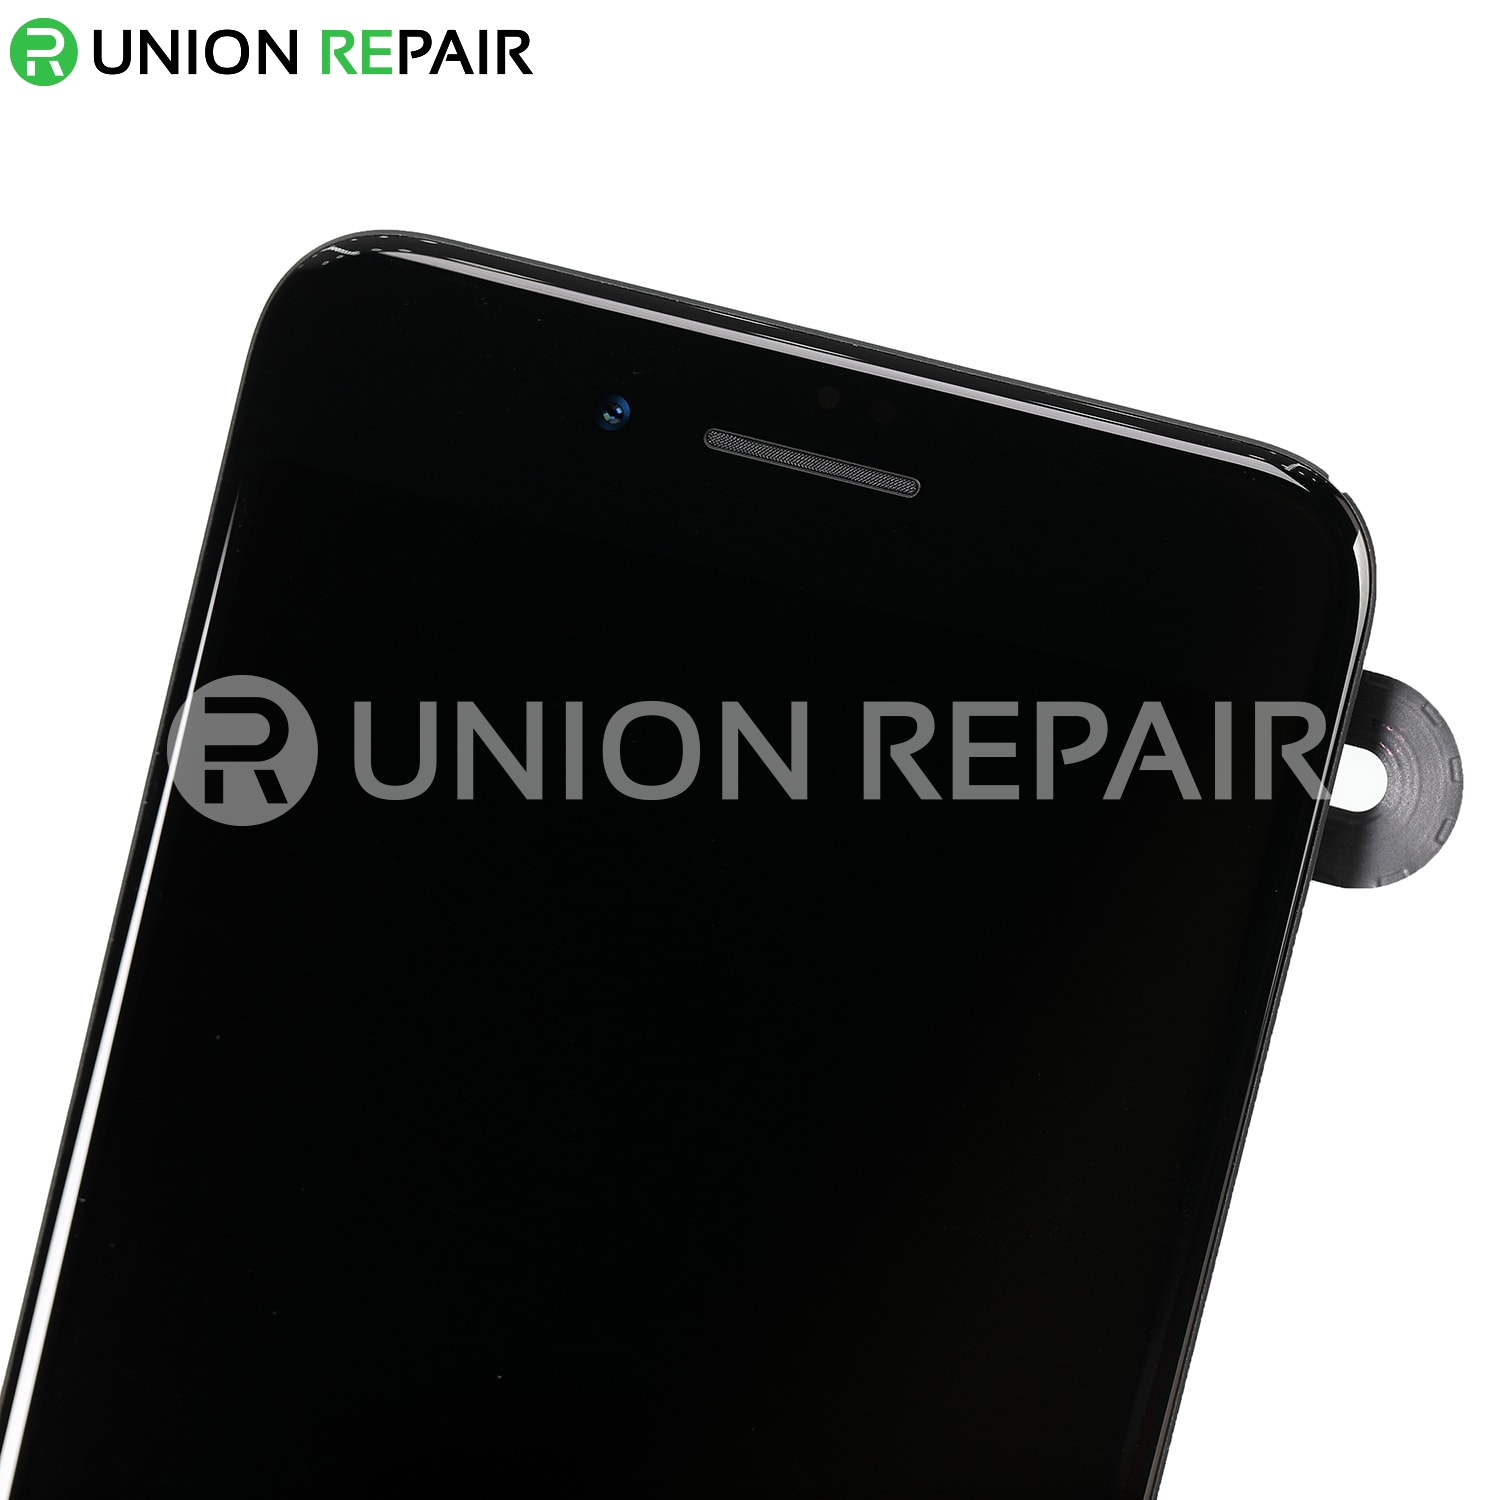 Replacement for iPhone 8 Plus LCD Screen Full Assembly without Home Button - Black